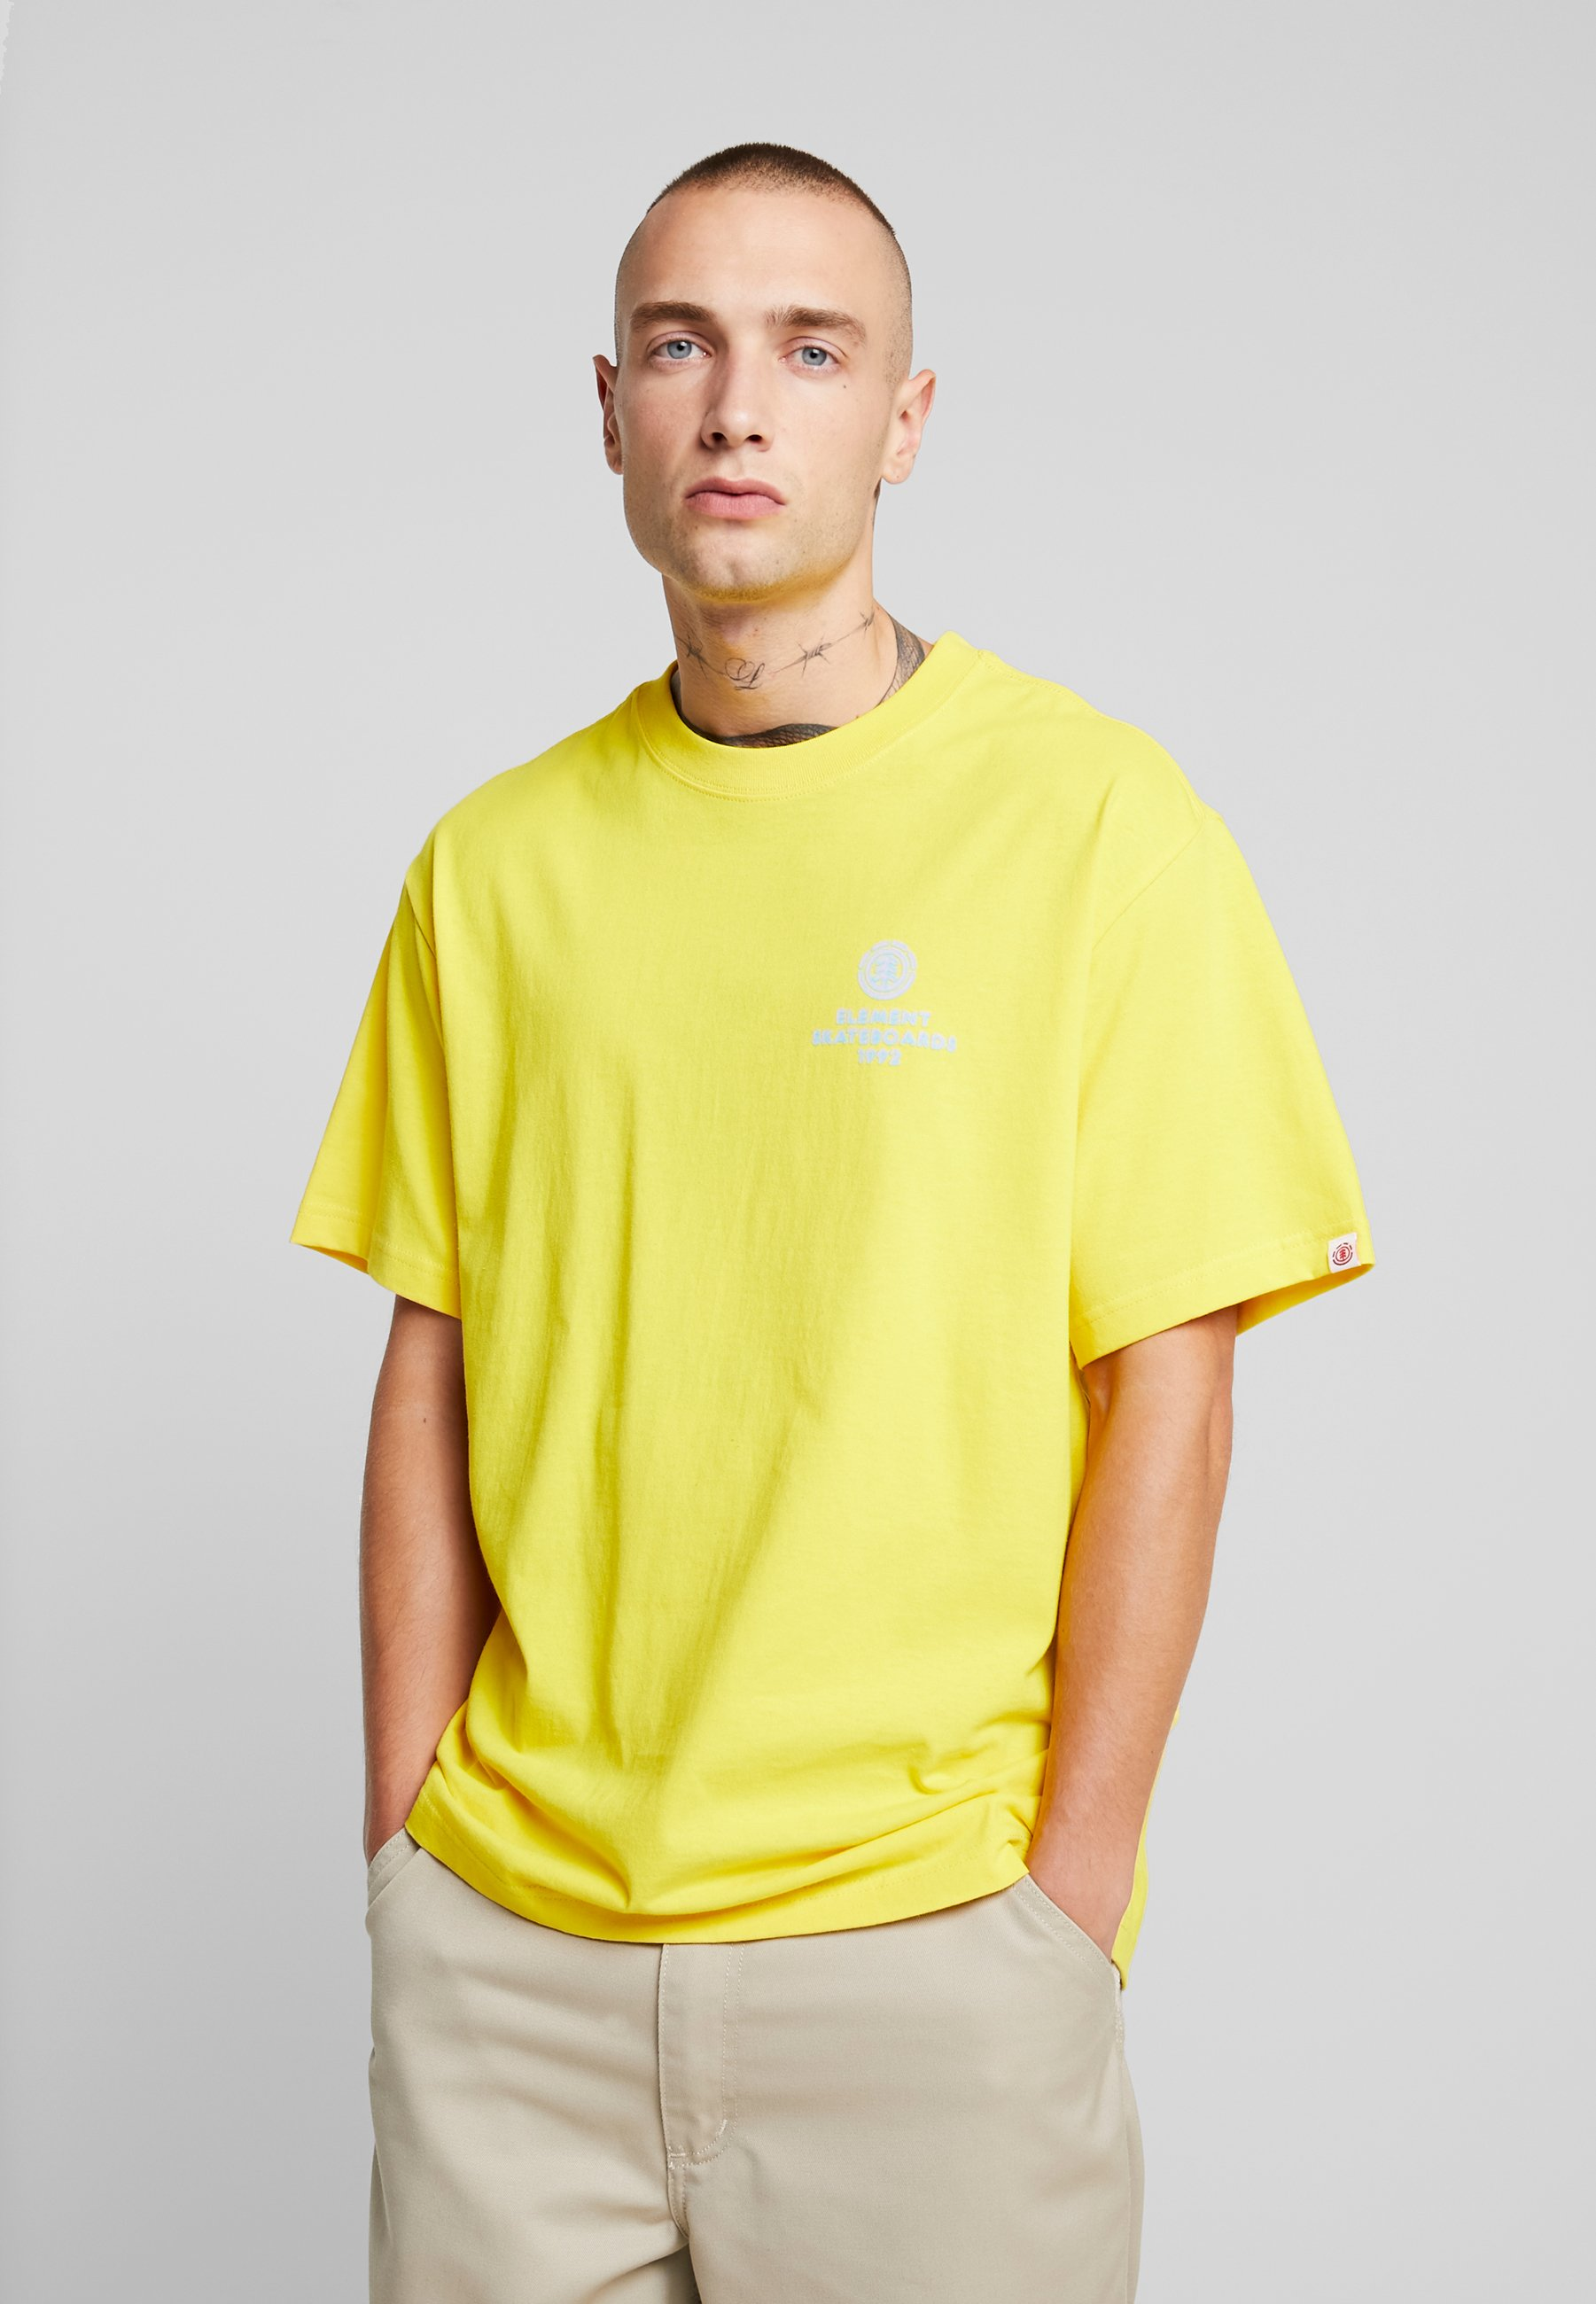 Imprimé Element Bright ChromeT Yellow shirt hrCBtsdxQ